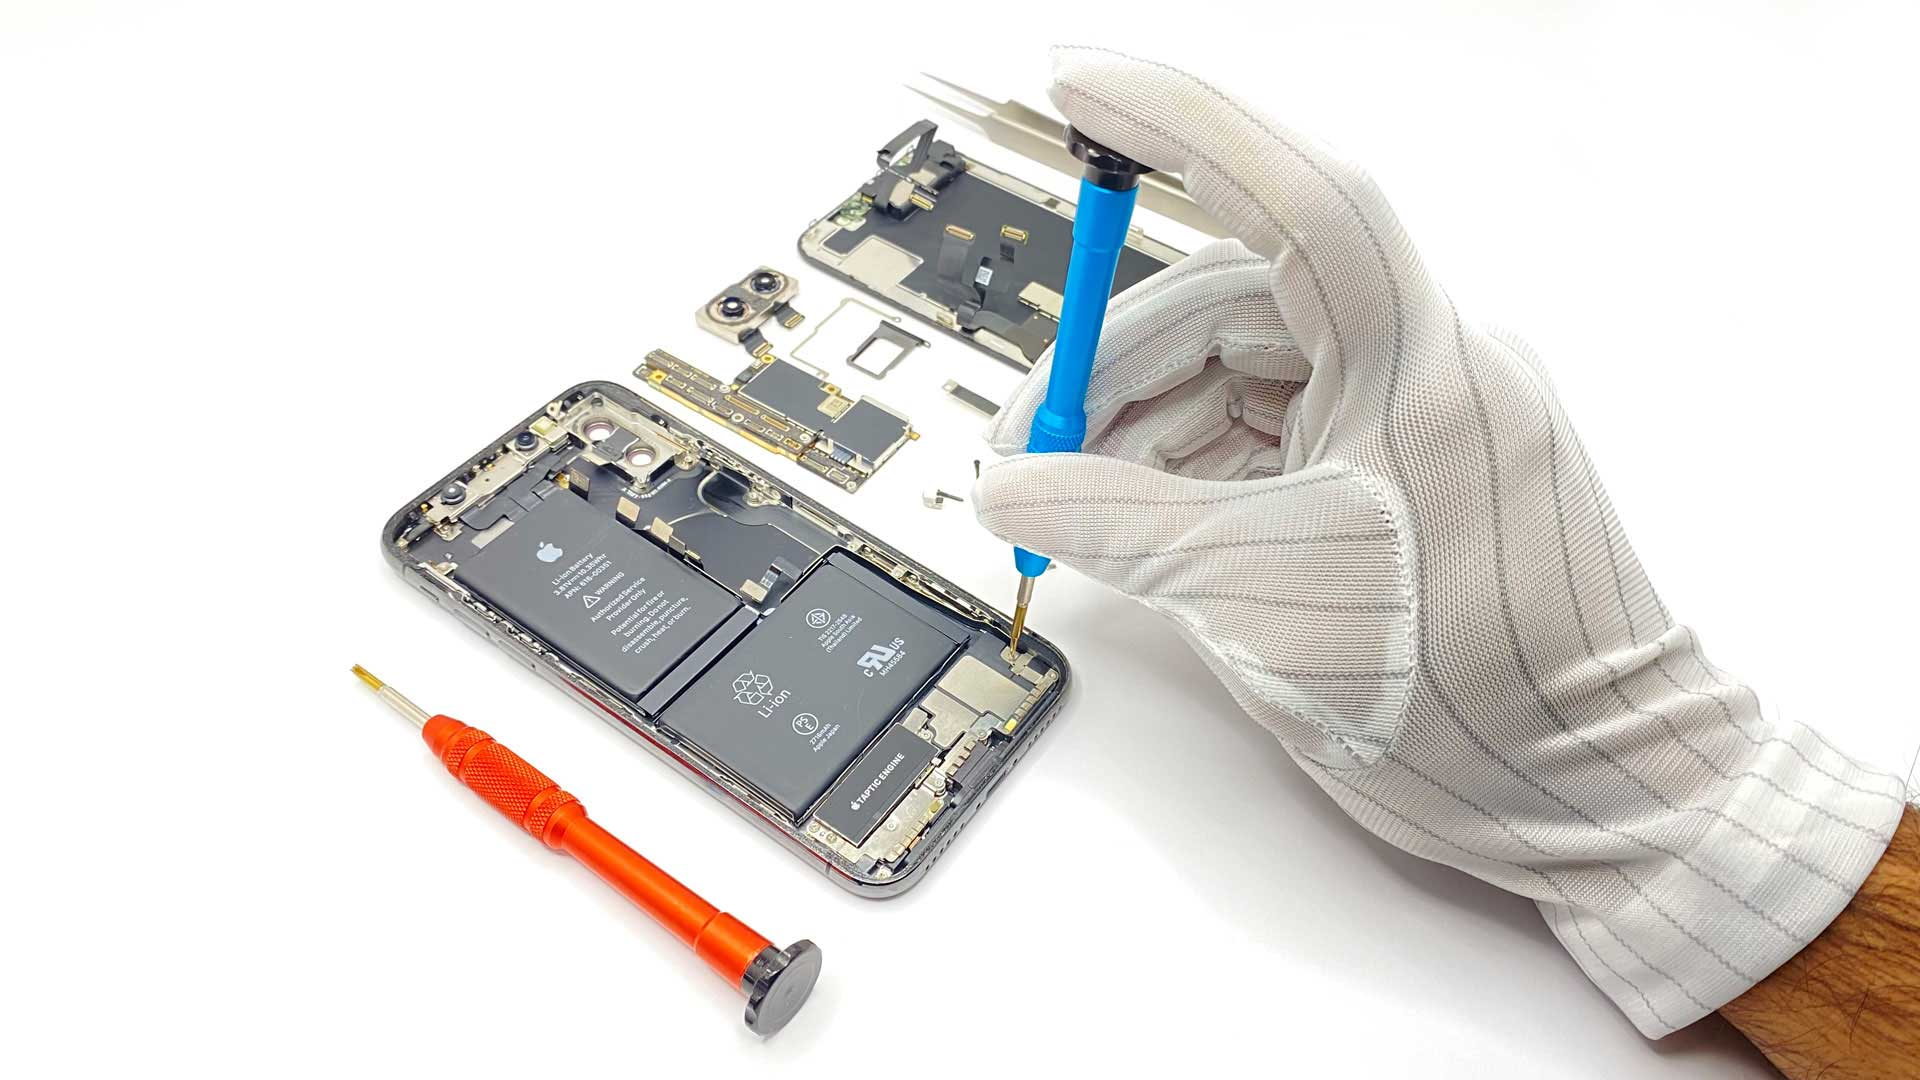 apple service center in dubai for fixing iphone